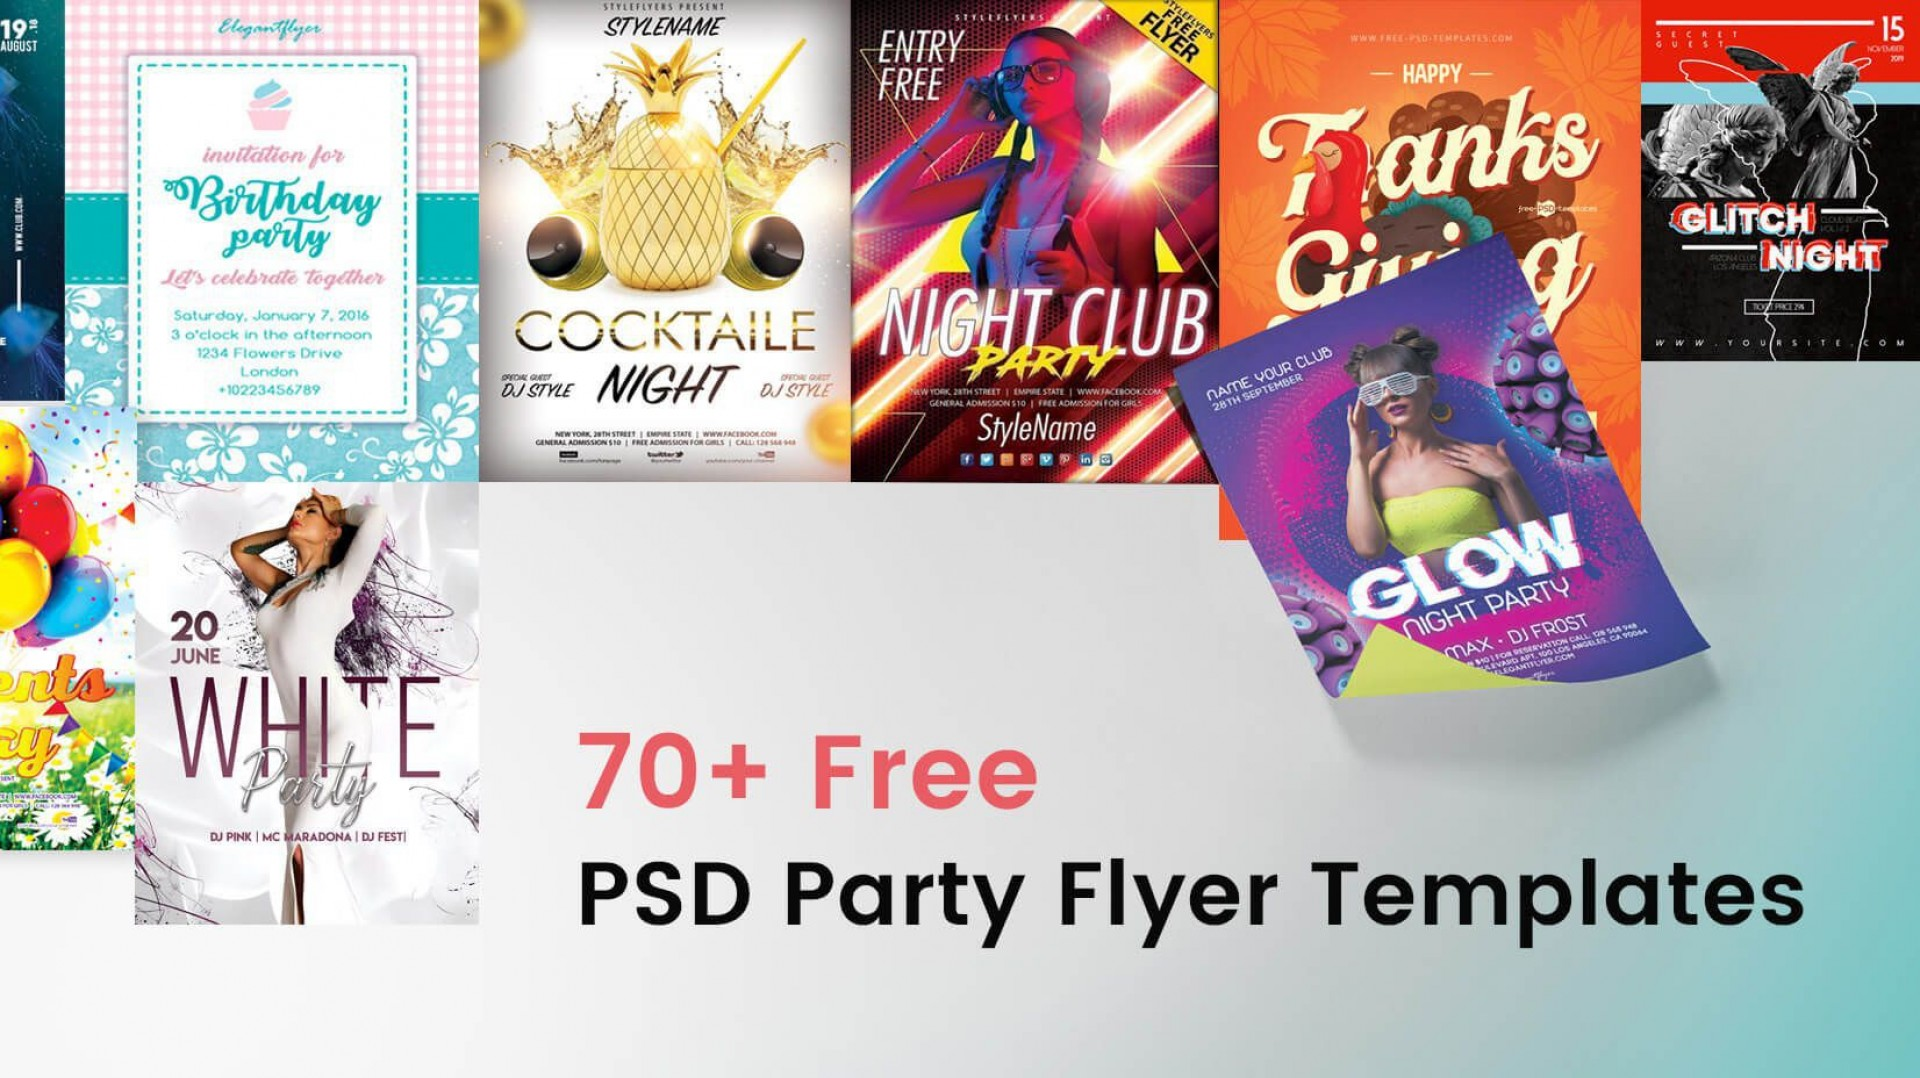 007 Outstanding Party Flyer Template Free Photoshop Example  Birthday Psd Masquerade -1920